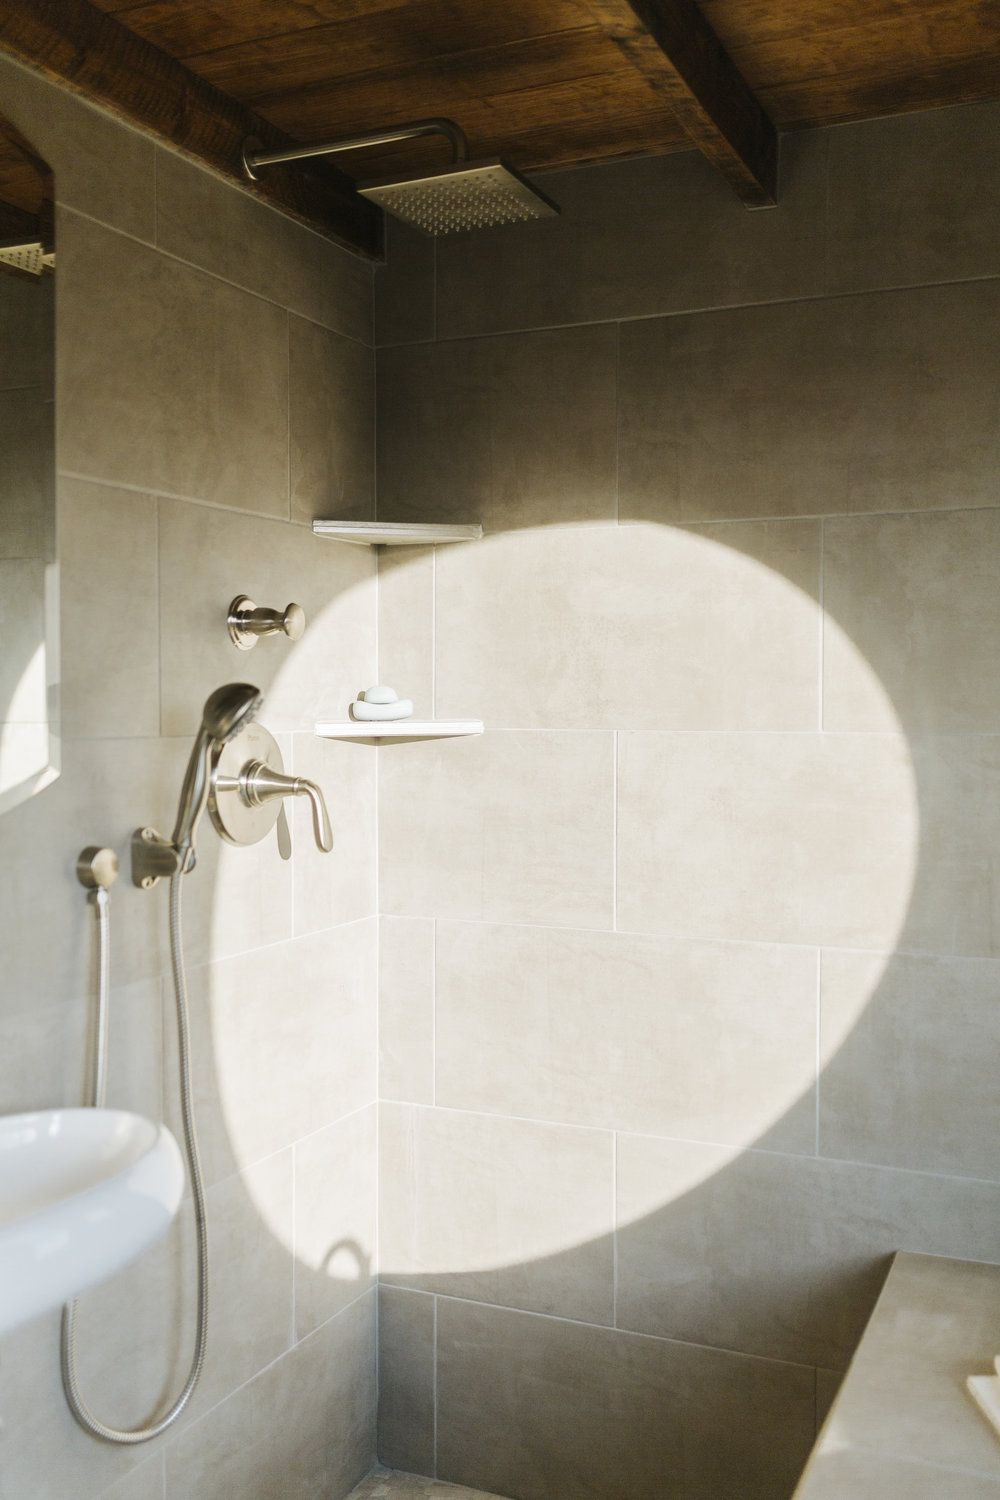 I Love Everything About This Shower Especially The Walls They Look Easy To Clean Monocle By Wind River Tiny Homes Tile Wet Bath Rain Head